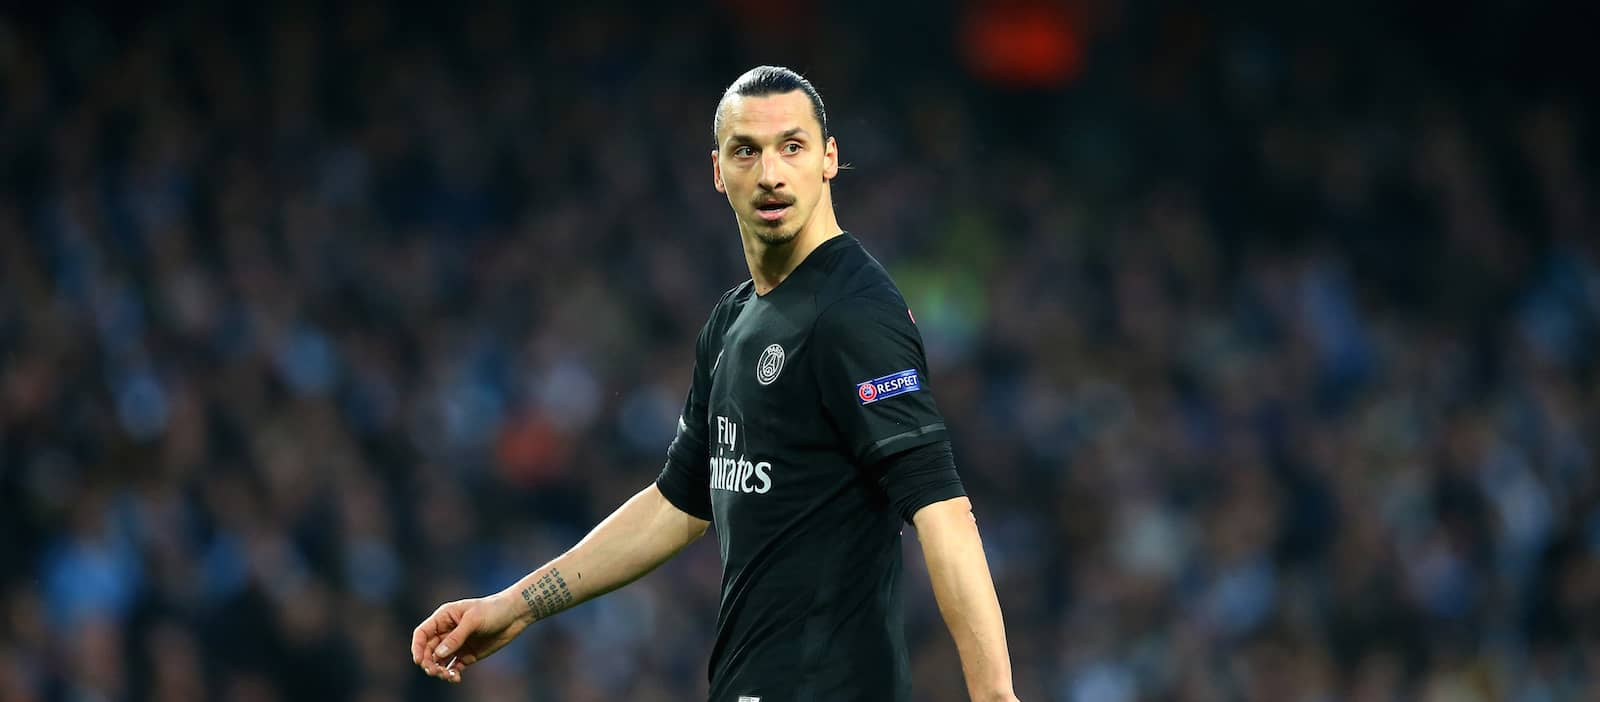 Zlatan Ibrahimovic invisible as PSG lose to Man City in Champions